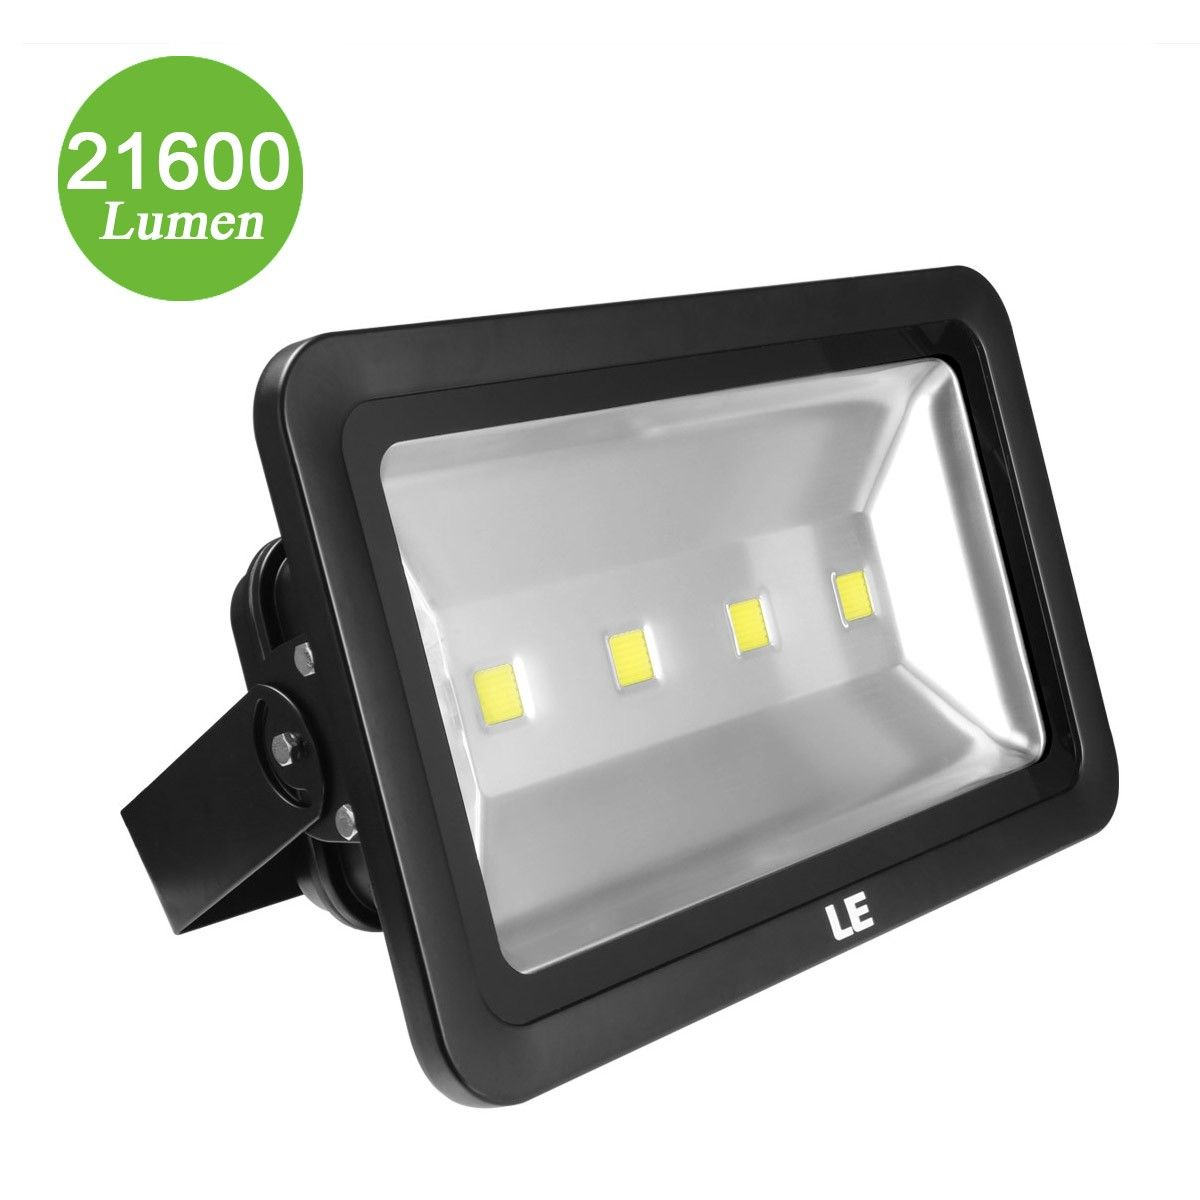 Led Outdoor Flood Light Bulbs Glamorous High Power 200W Outdoor Security Led Flood Lights 600W Hps Inspiration Design